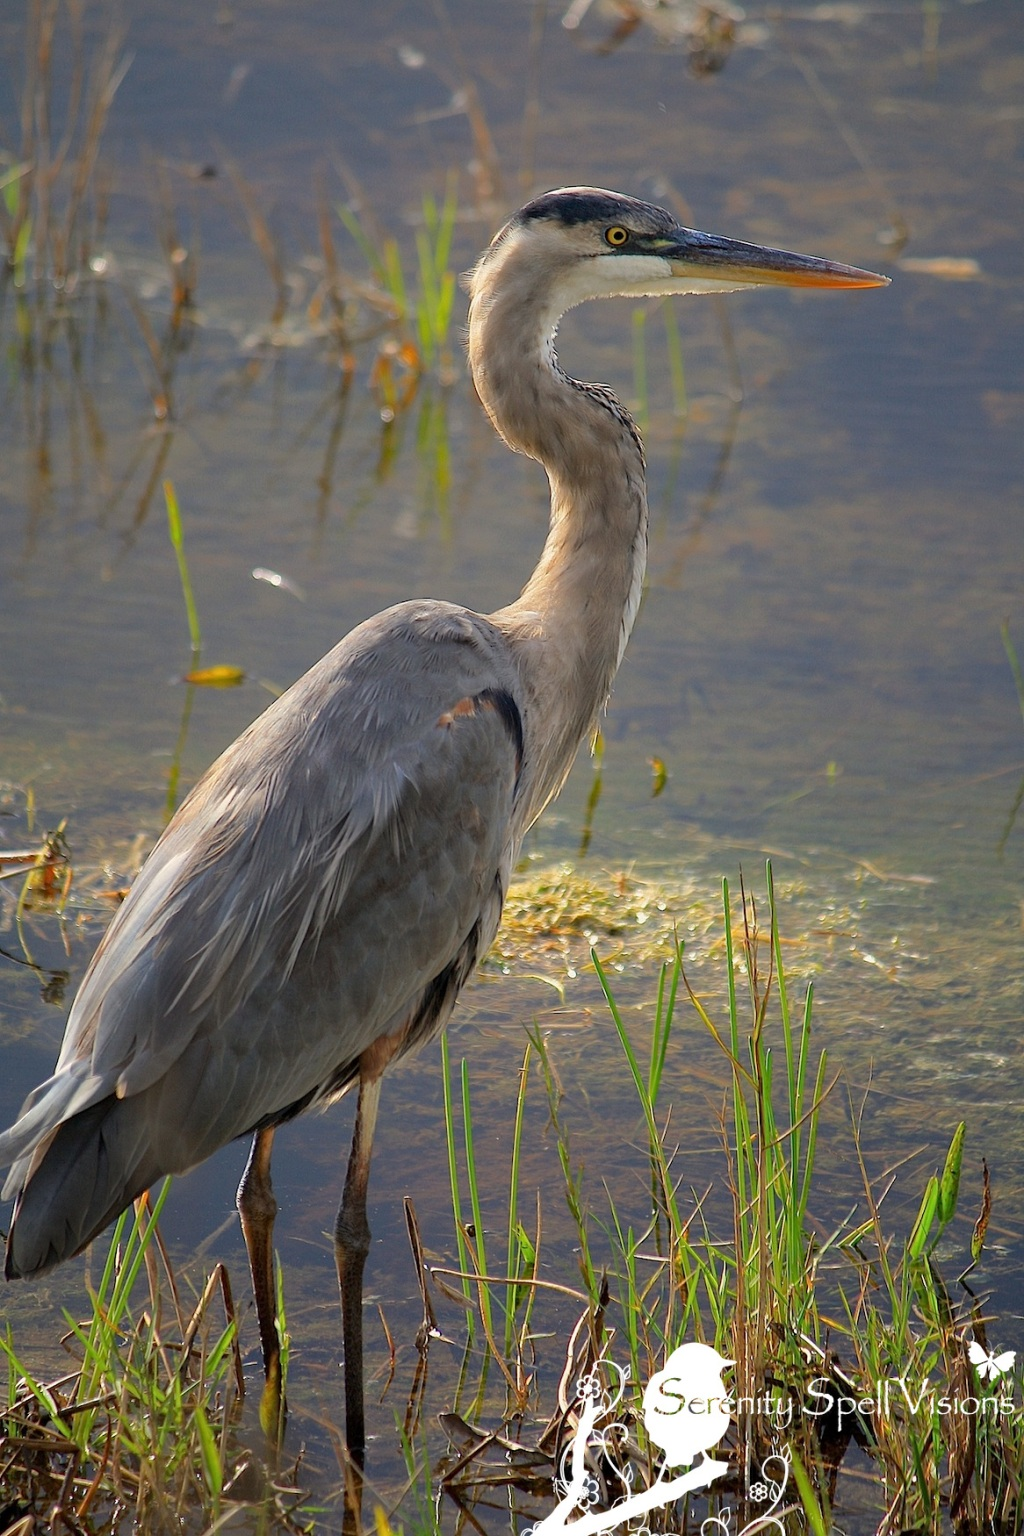 Great Blue Heron in Arthur R. Marshall Loxahatchee National Wildlife Refuge, Florida